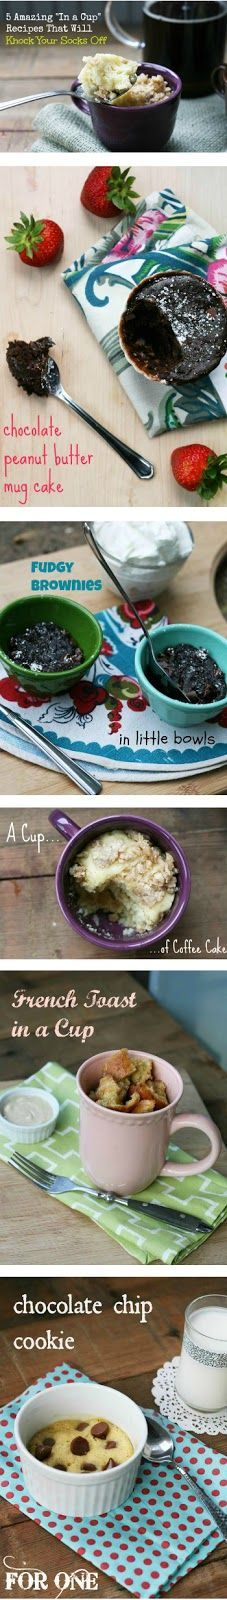 "Top 5 ""In a Mug"" recipes of all time! Dessert in just a couple of minutes. Click this link for recipes: http://www.cheaprecipeblog.com/2013/06/top-5-in-a-mug-recipes/"